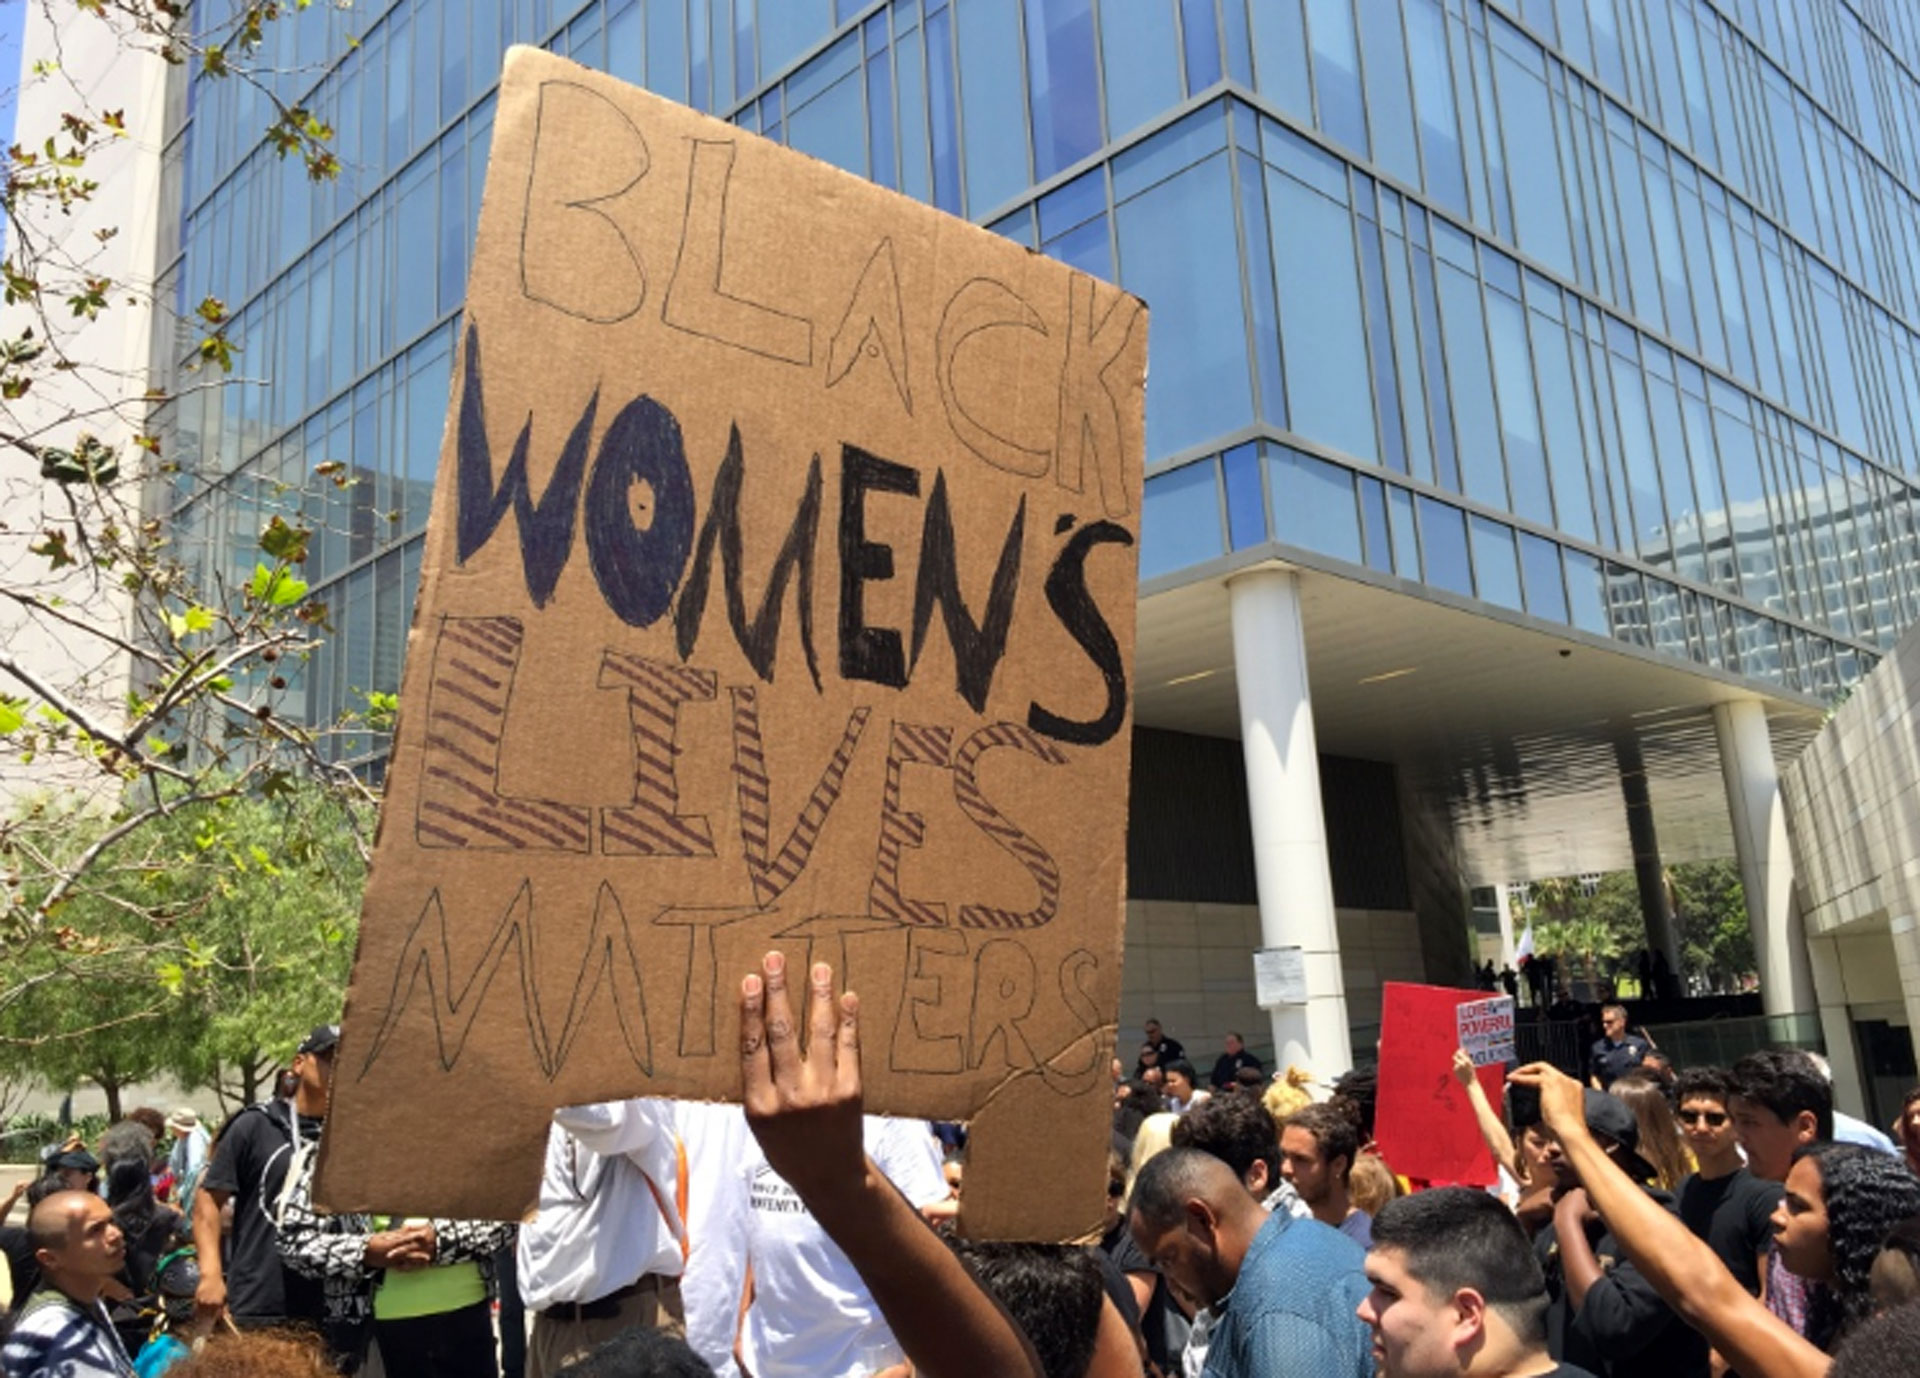 Black Lives Matter protesters assembled outside a meeting of the Los Angeles Board of Police Commissioners at LAPD headquarters on July 12, 2016. The commission was considering whether LAPD officers' shooting in August 2015 of a 30-year-old black woman, Redel Kentel Jones, was justified.